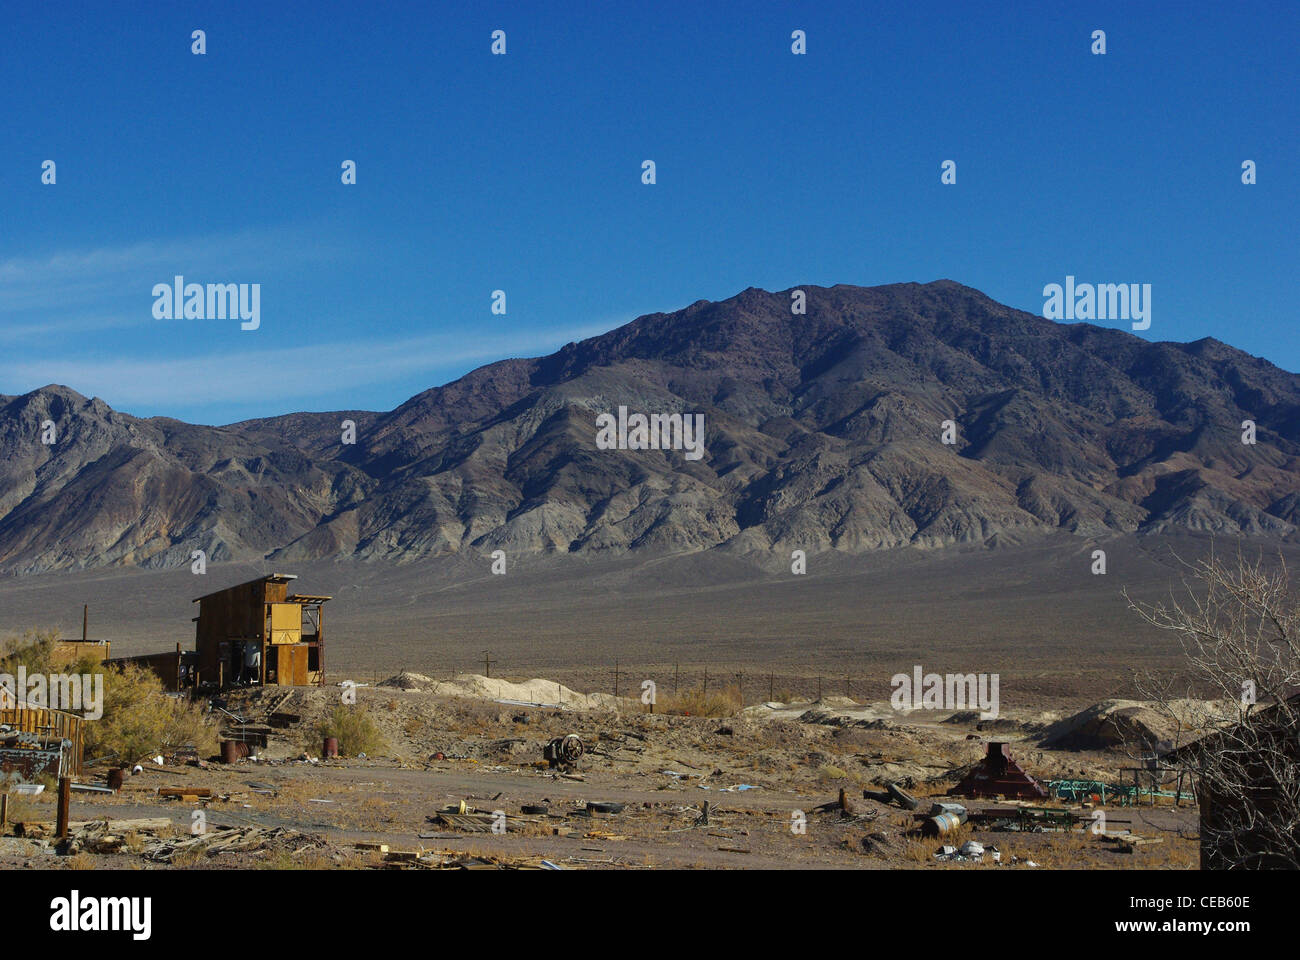 Old mining area and high mountains, Nevada Desert - Stock Image